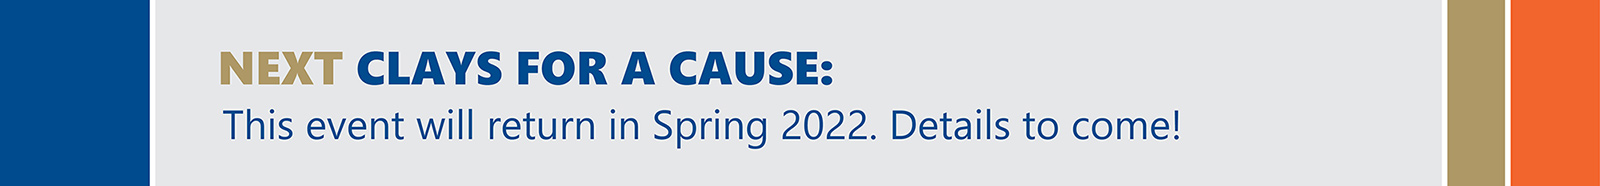 Clays for a Cause will return in Spring 2022. Details to come.